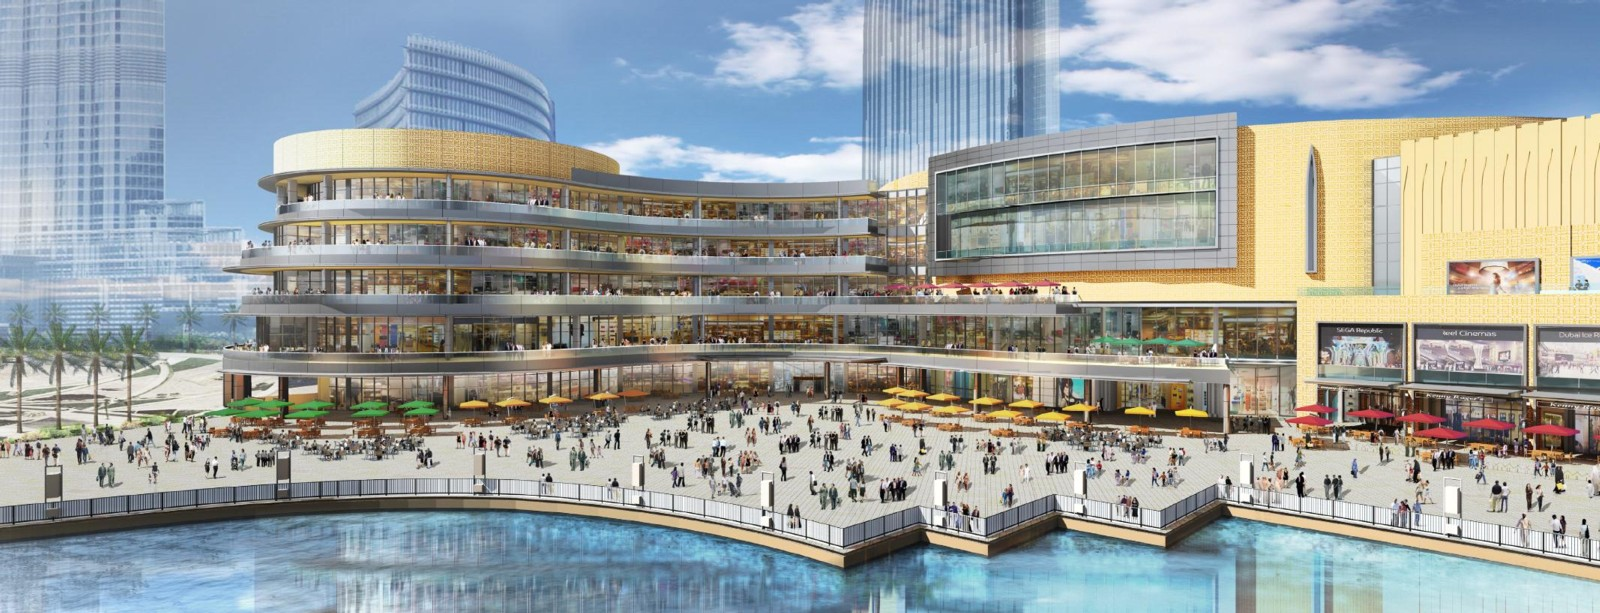 The dubai mall expansion it is all about dubai the massive expansion of the dubai mall the worlds largest shopping and entertainment destination has commenced in preparation to welcome over 100 million sciox Choice Image